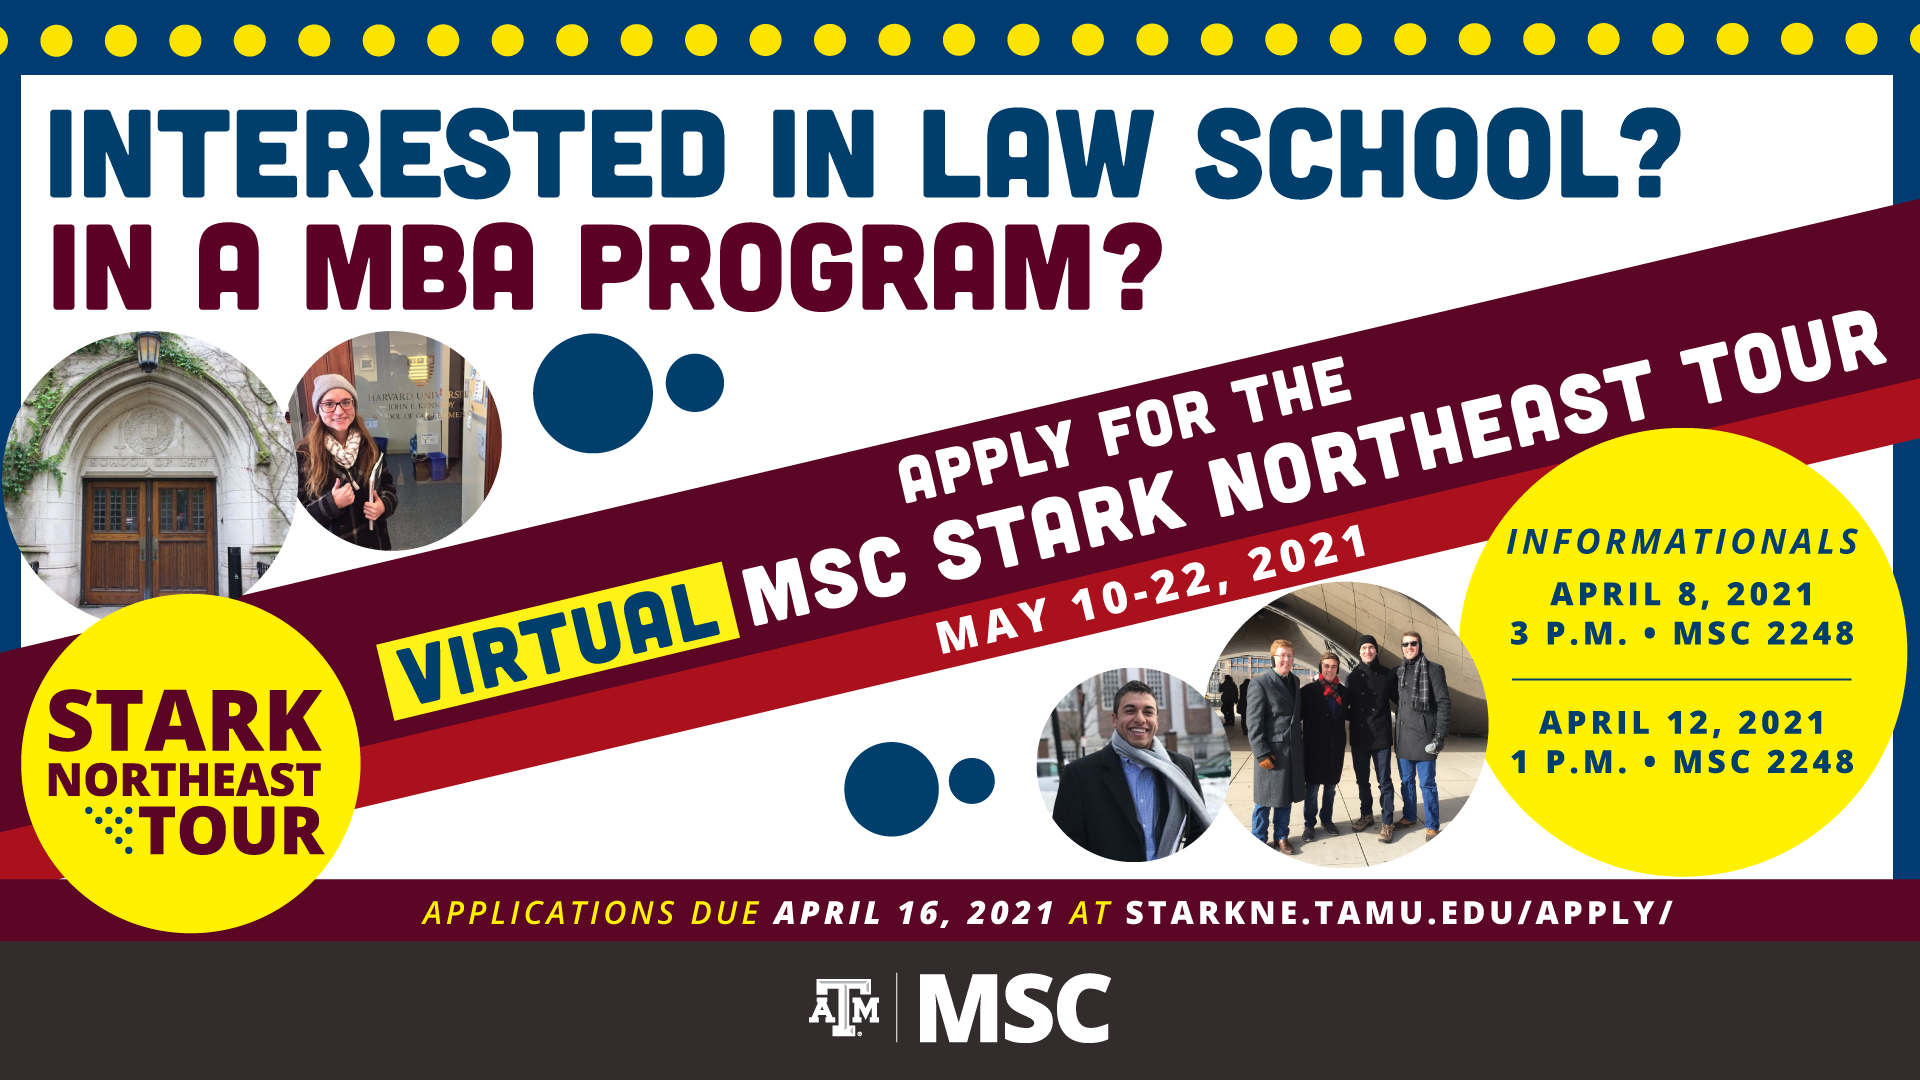 Interested in Law School? in a MBA Program? Apply for the Virtual MSC Stark Northeast Tour for May 10-22, 2021, Informationals are on April 8, 2021 at 3 p.m. at MSC 2248, April 12, 2021 at 1 p.m. at MSC 2248. Applications due April 16, 2021 at starkne.tamu.edu/apply/